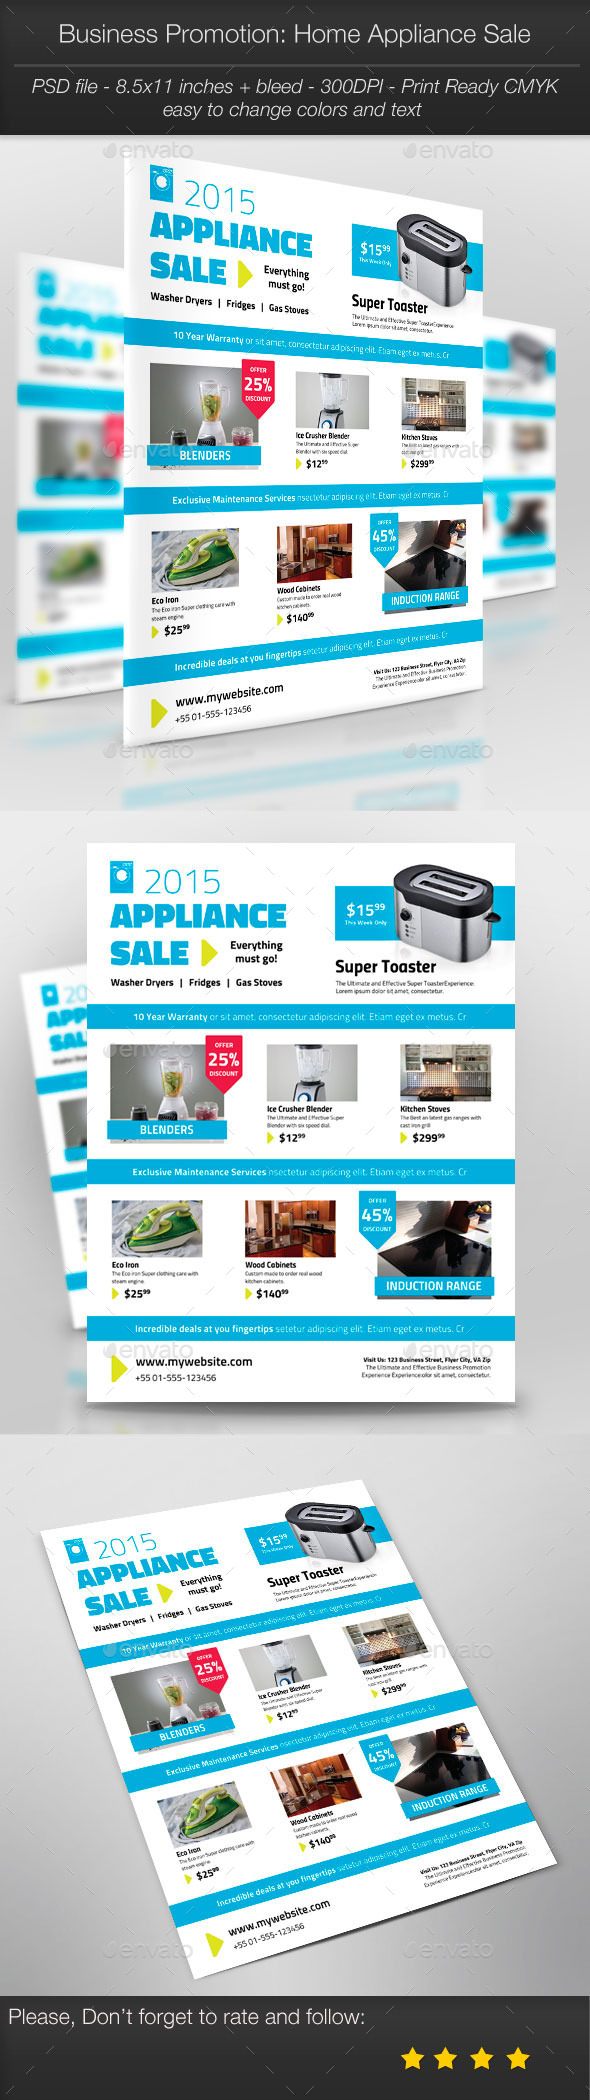 GraphicRiver Business Promotion Home Appliance Sale 10968051